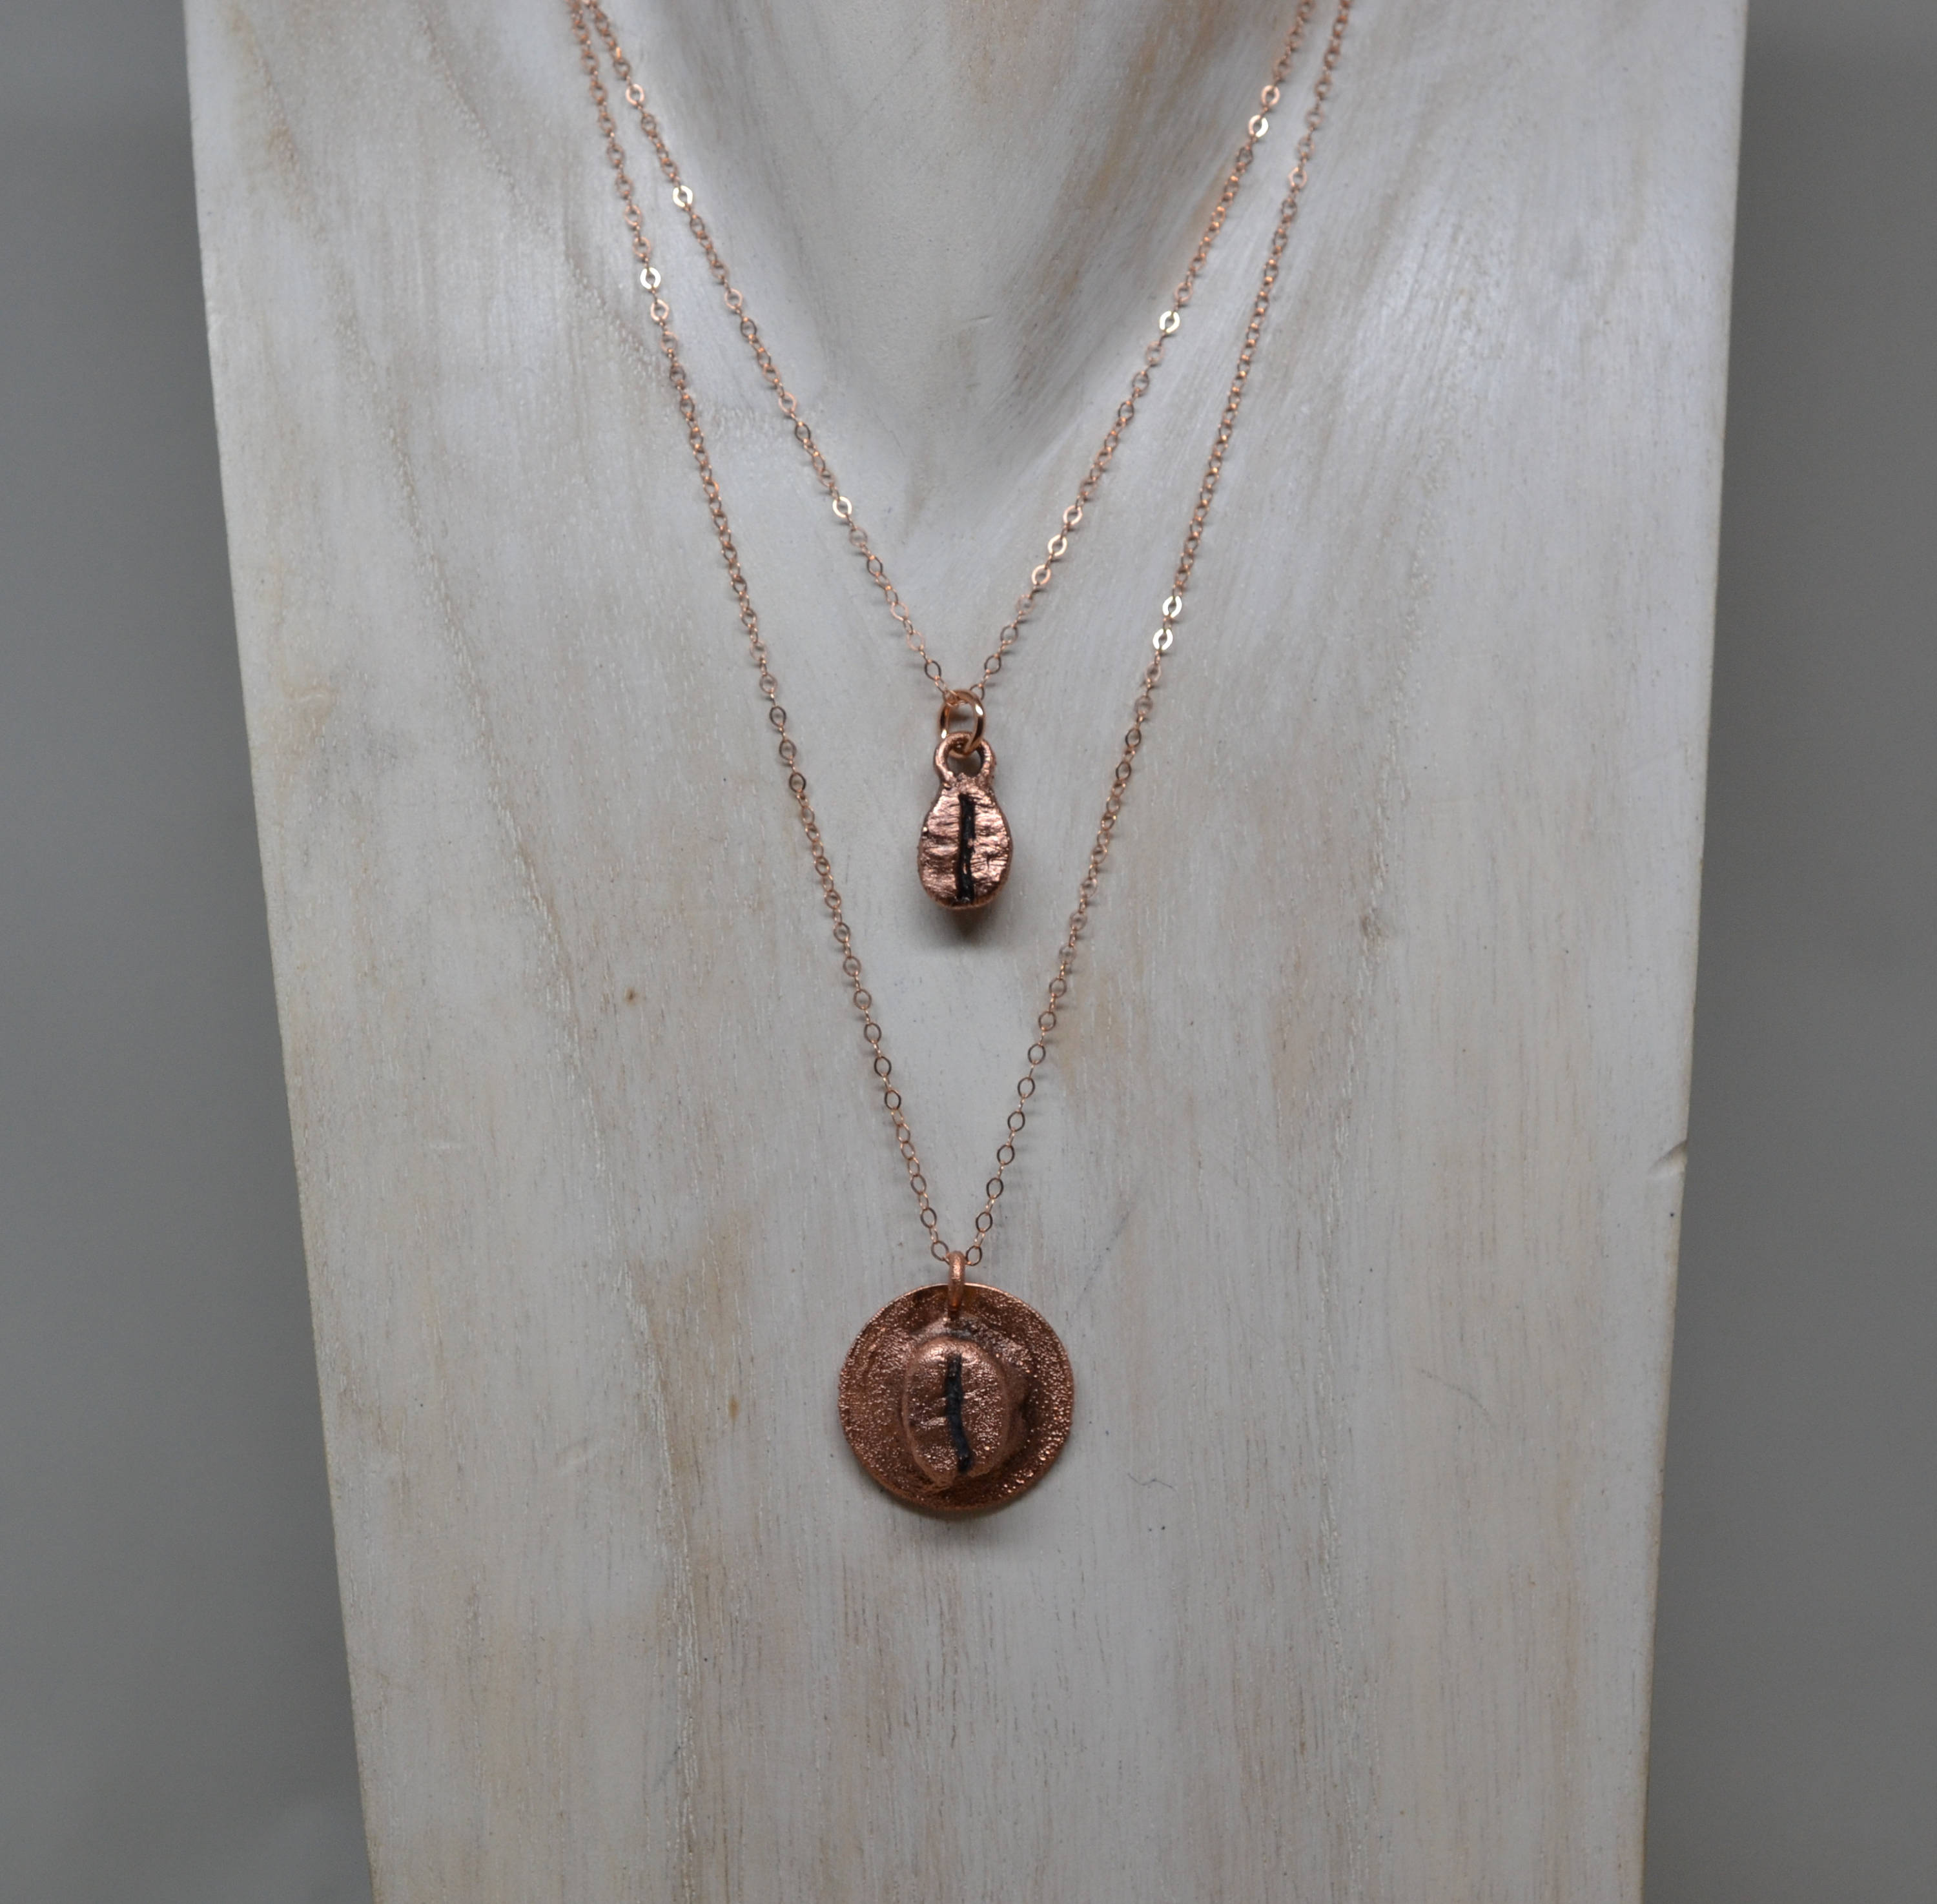 Copper Coffee Bean Necklace ||Made to Order||